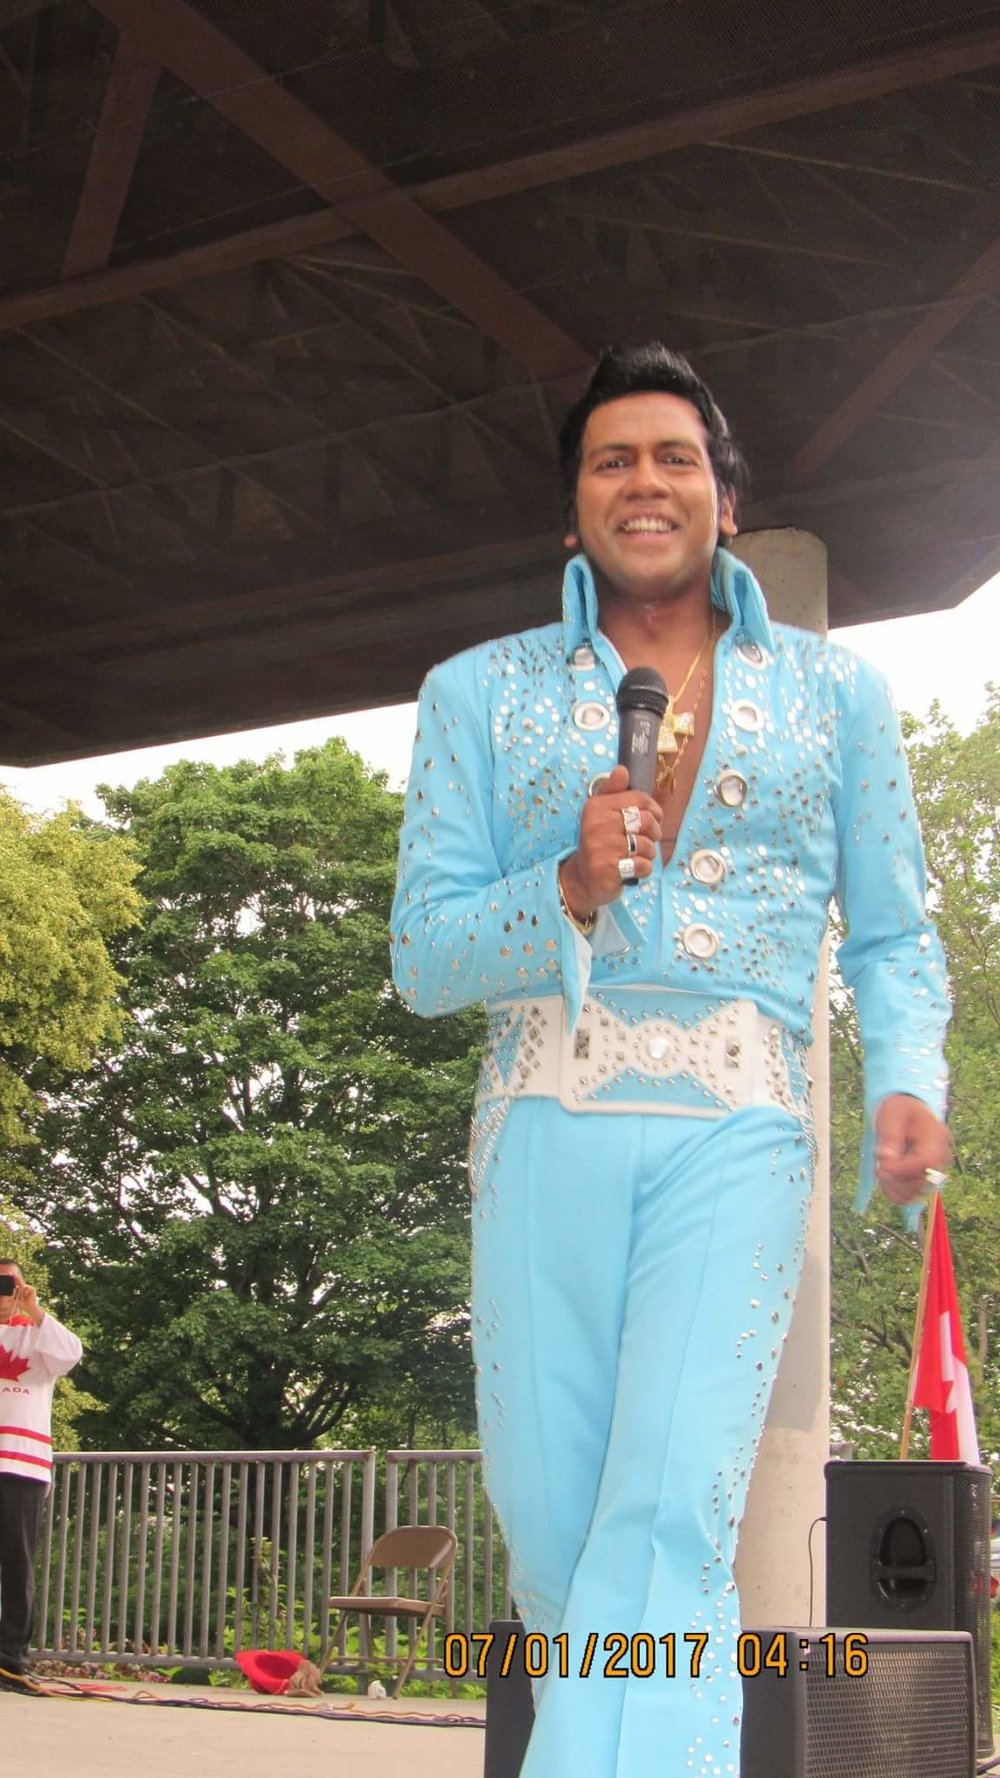 ETA  Lorensz Francke  performing at the Collingwood Elvis Festival, 2017.   Submitted by  Lorensz Francke